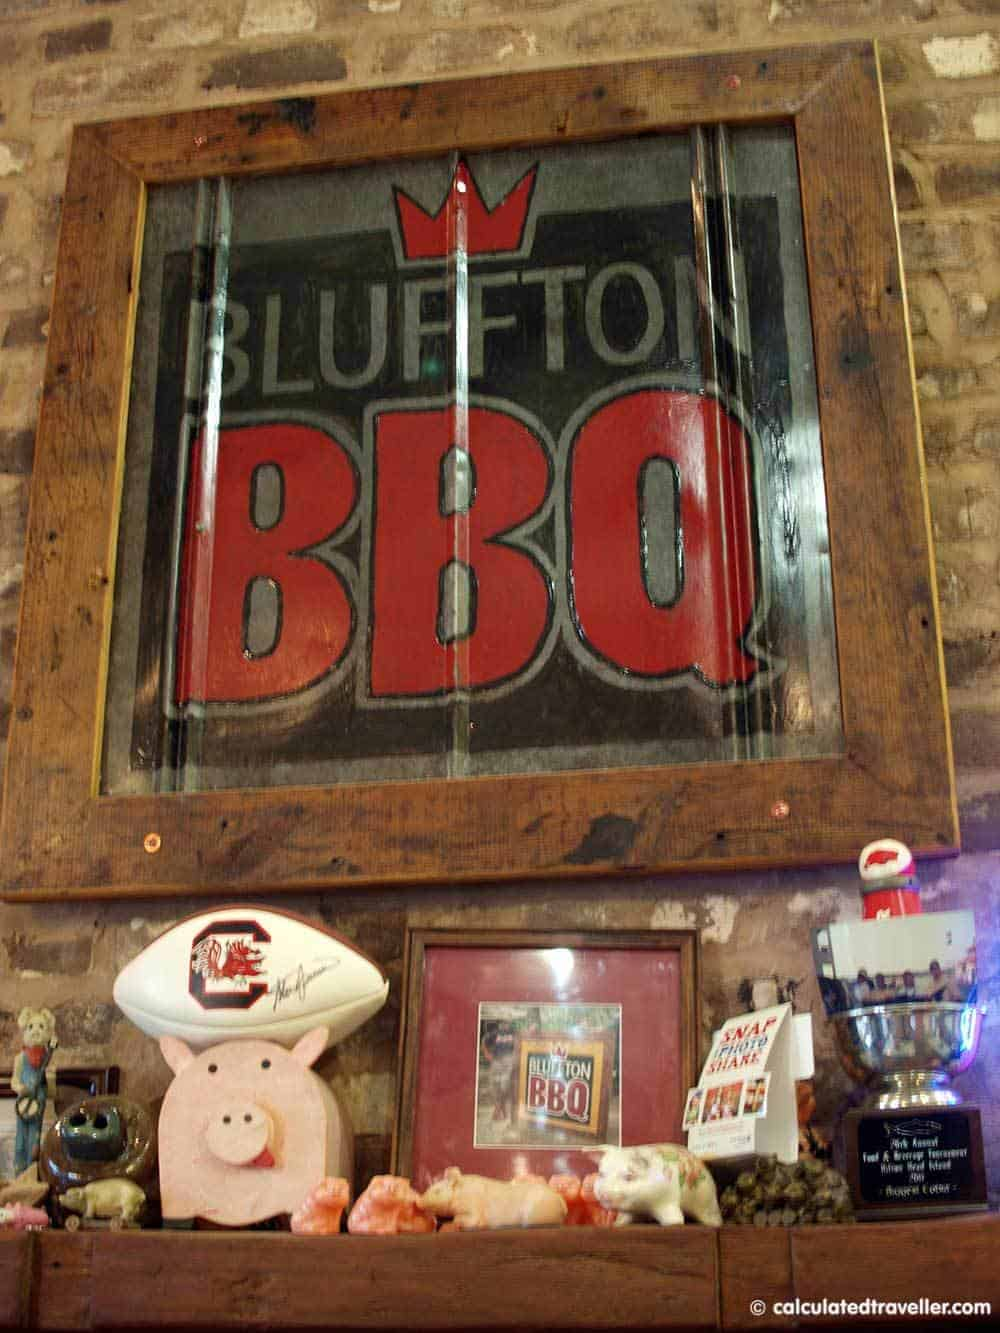 bluffton bbq south carolina calculated traveller